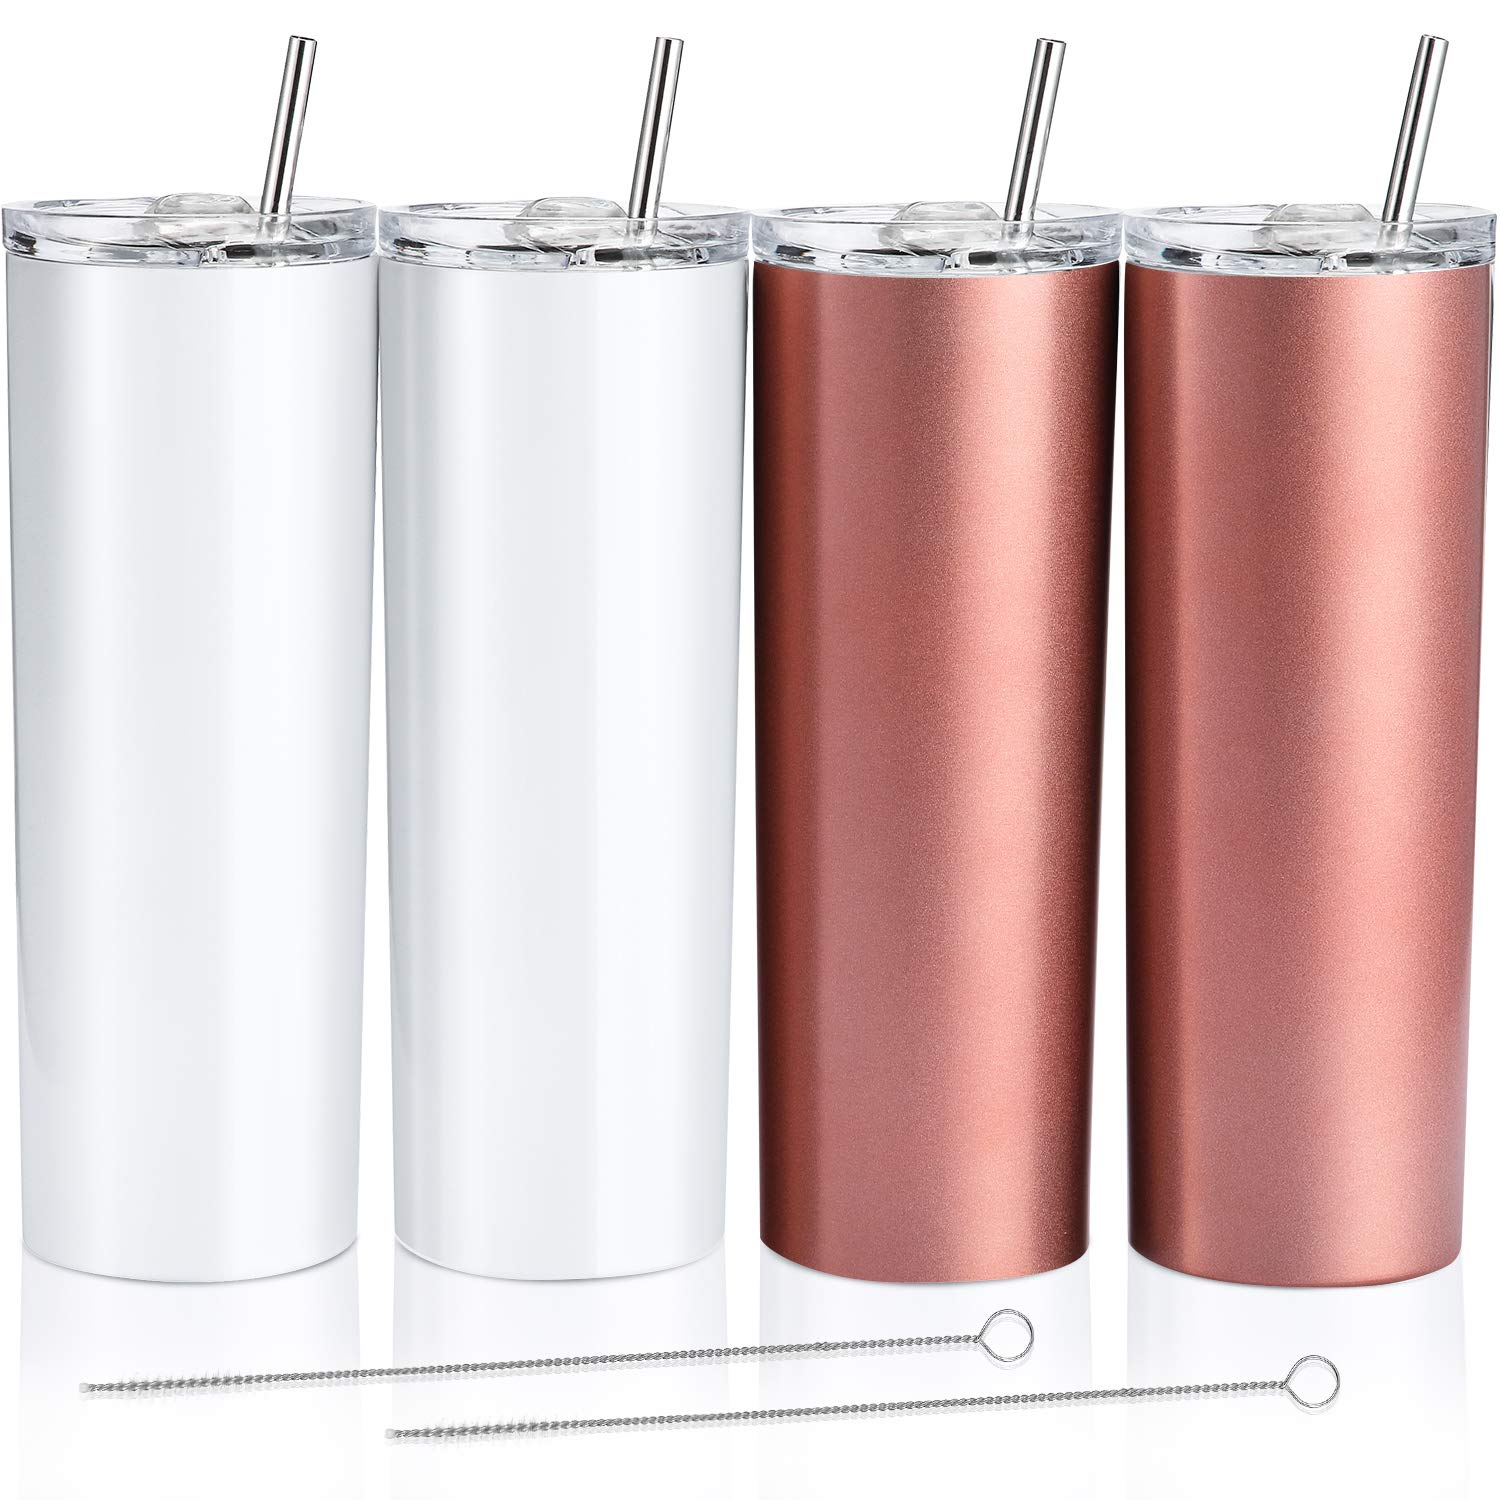 4 Pack Classic Tumbler Stainless Steel Double-Insulated Water Tumbler Cup with Lid and Straw Vacuum Travel Mug Gift with Cleaning Brush (Pearl White, Rose Gold, 20 oz)